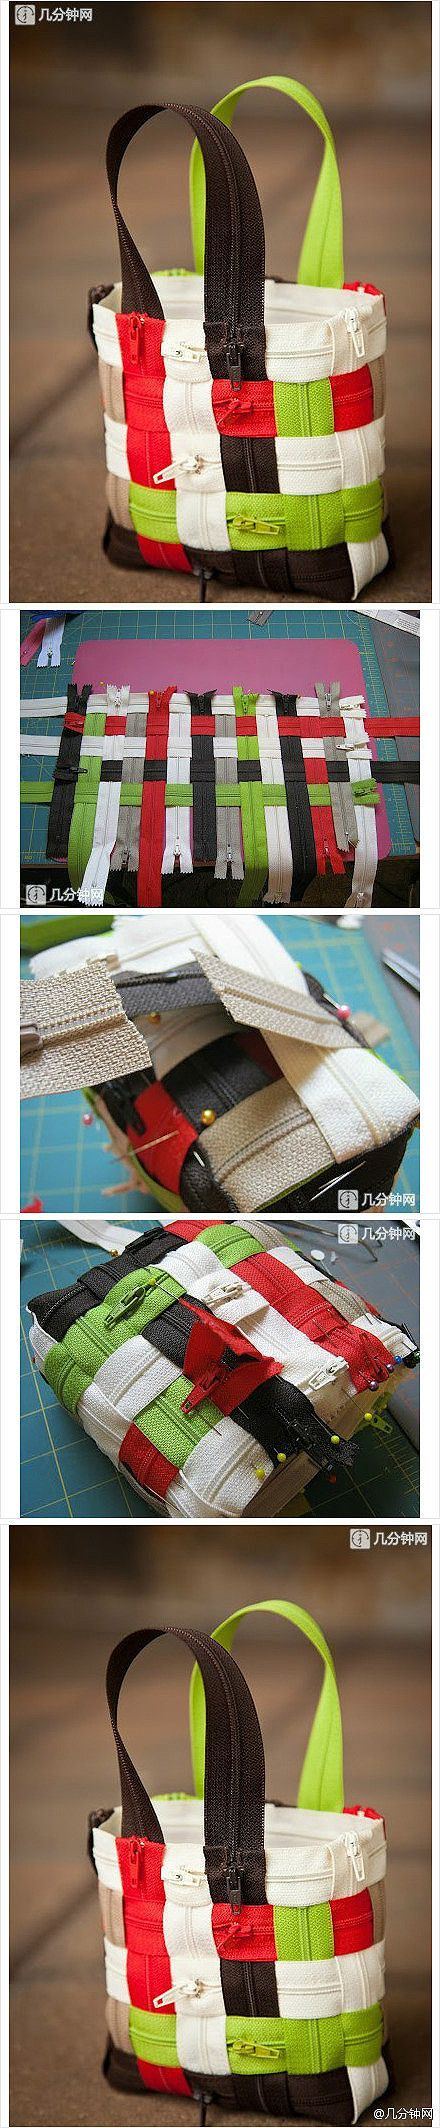 Bag made of zippers